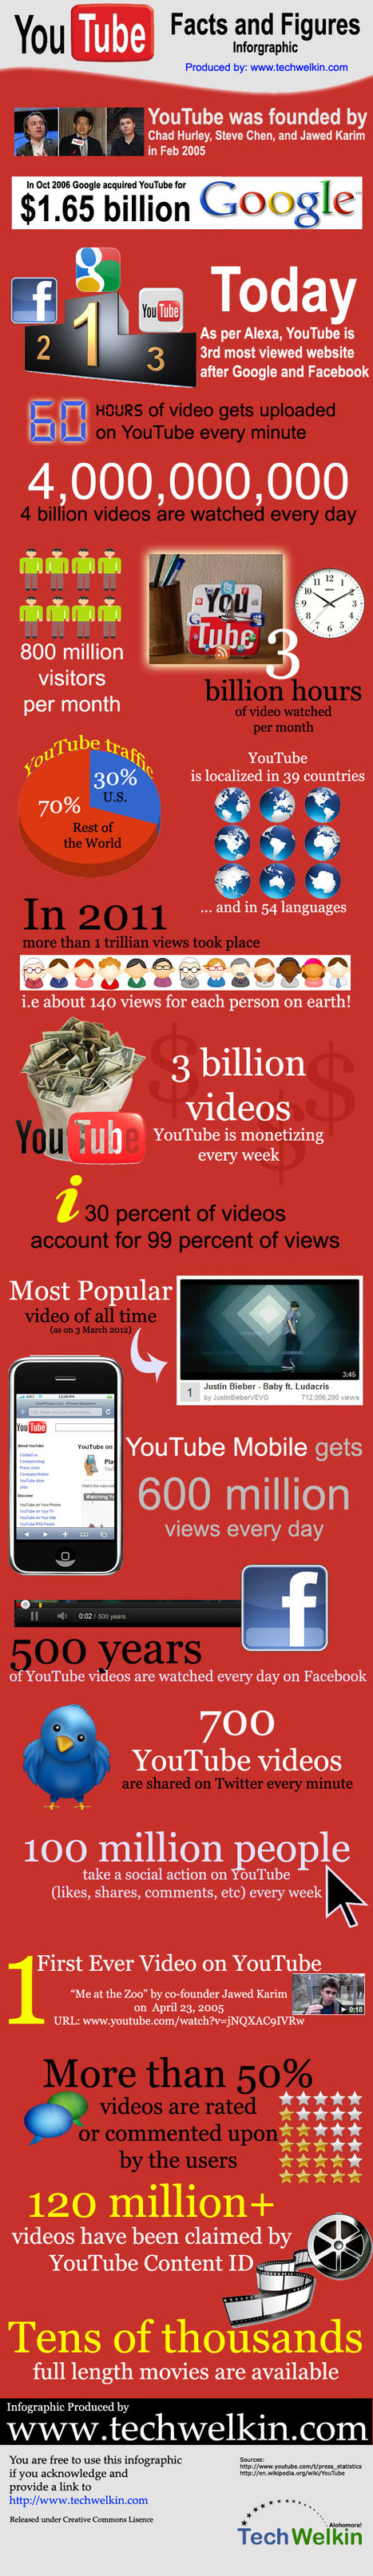 Mind Numbing YouTube Facts,Figures and Statistics - Infographic | Allround Social Media Marketing | Scoop.it